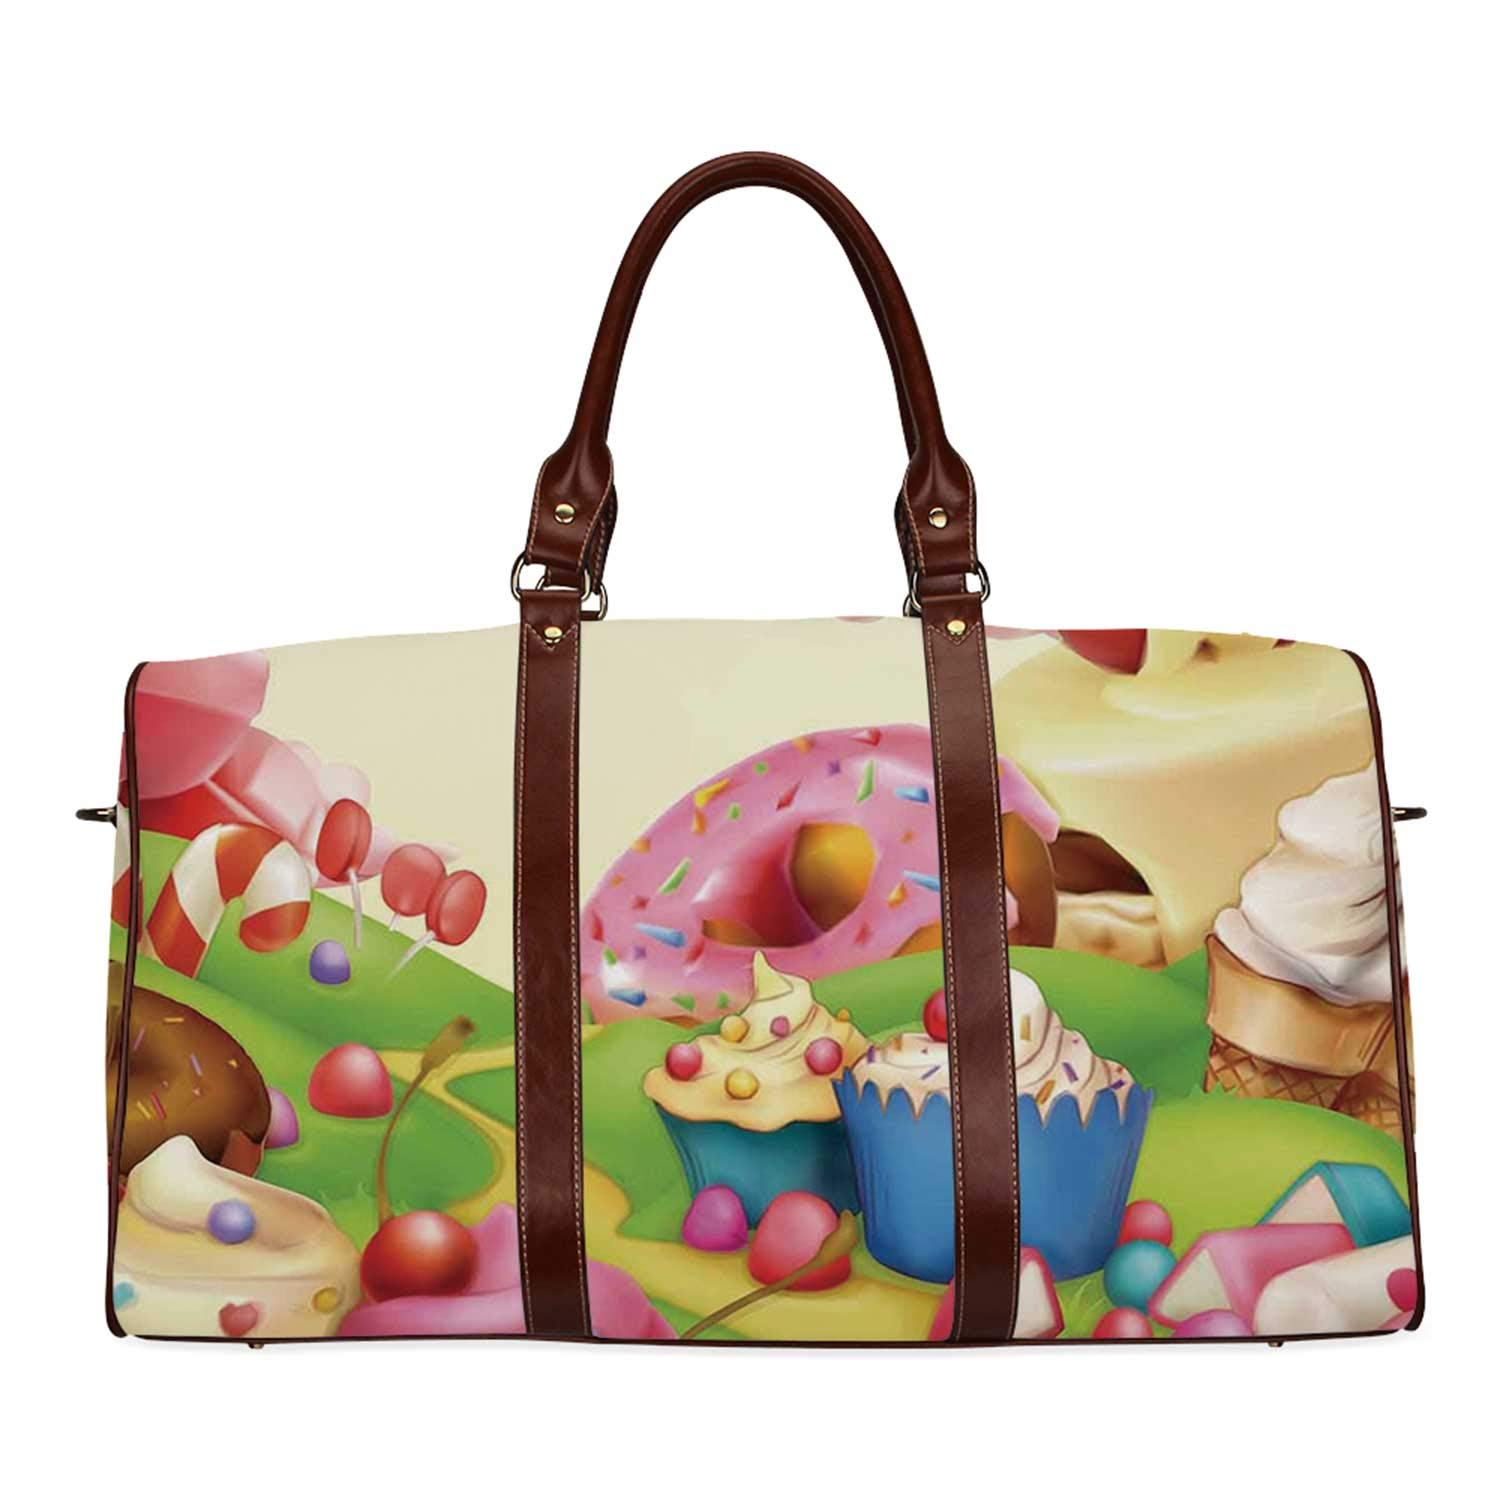 Modern Women's Travel Bag,Yummy Donuts Sweet Land Cupcakes Ice Cream Cotton Candy Clouds Kids Nursery Design for Ladies,18.62''L x 8.5''W x 9.65''H by YOLIYANA